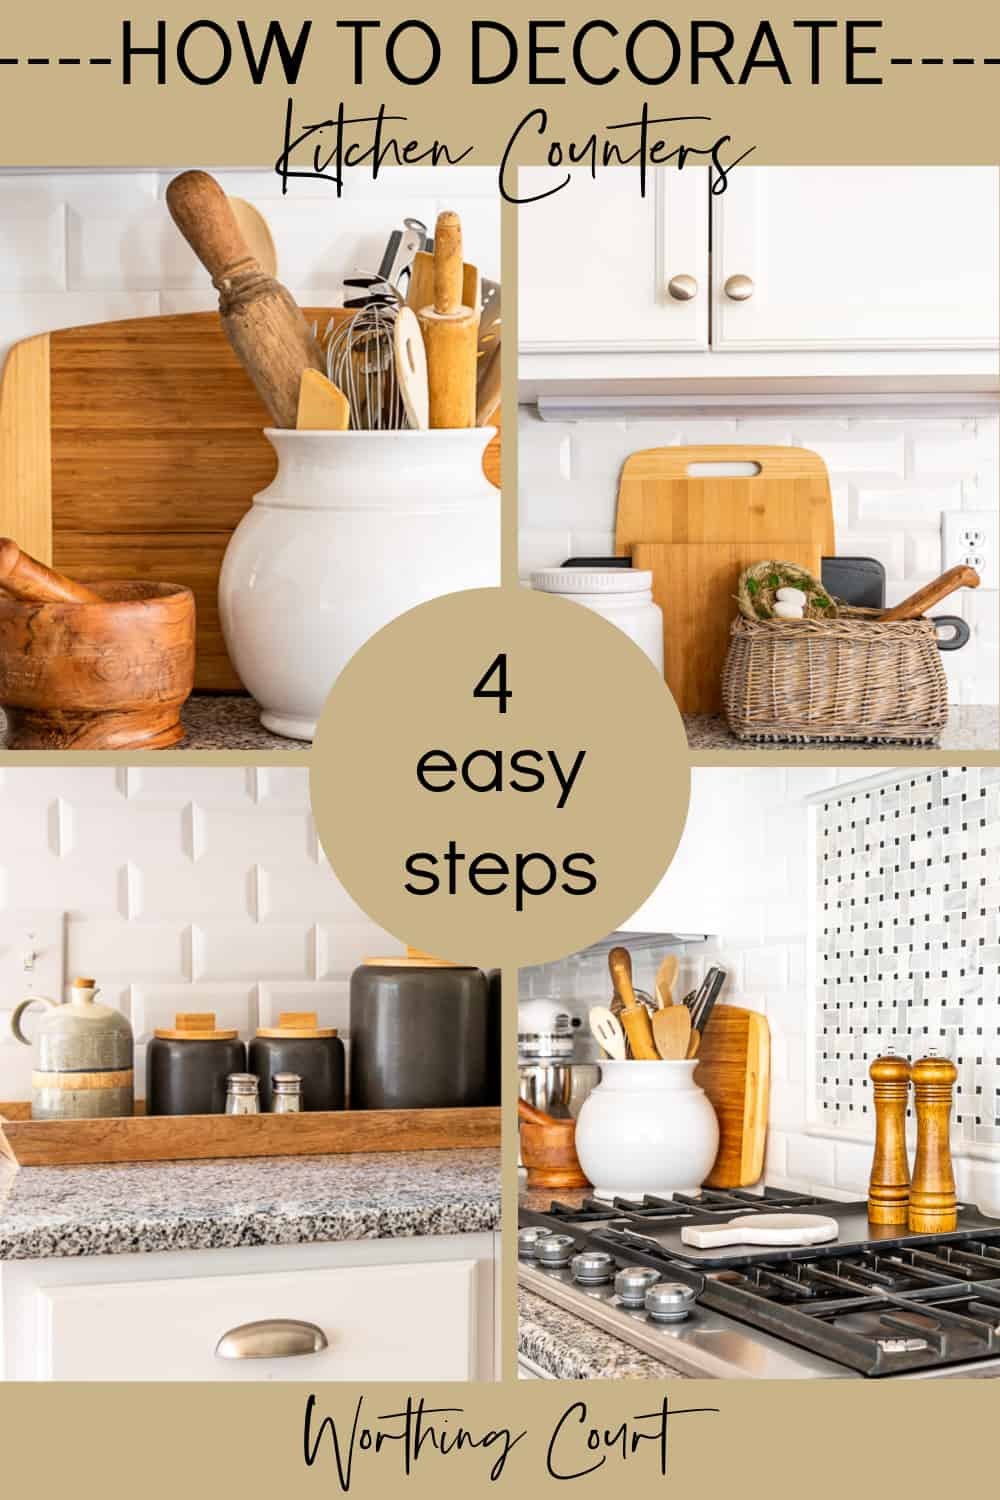 pinterest image for blog post about how to decorate kitchen countertops